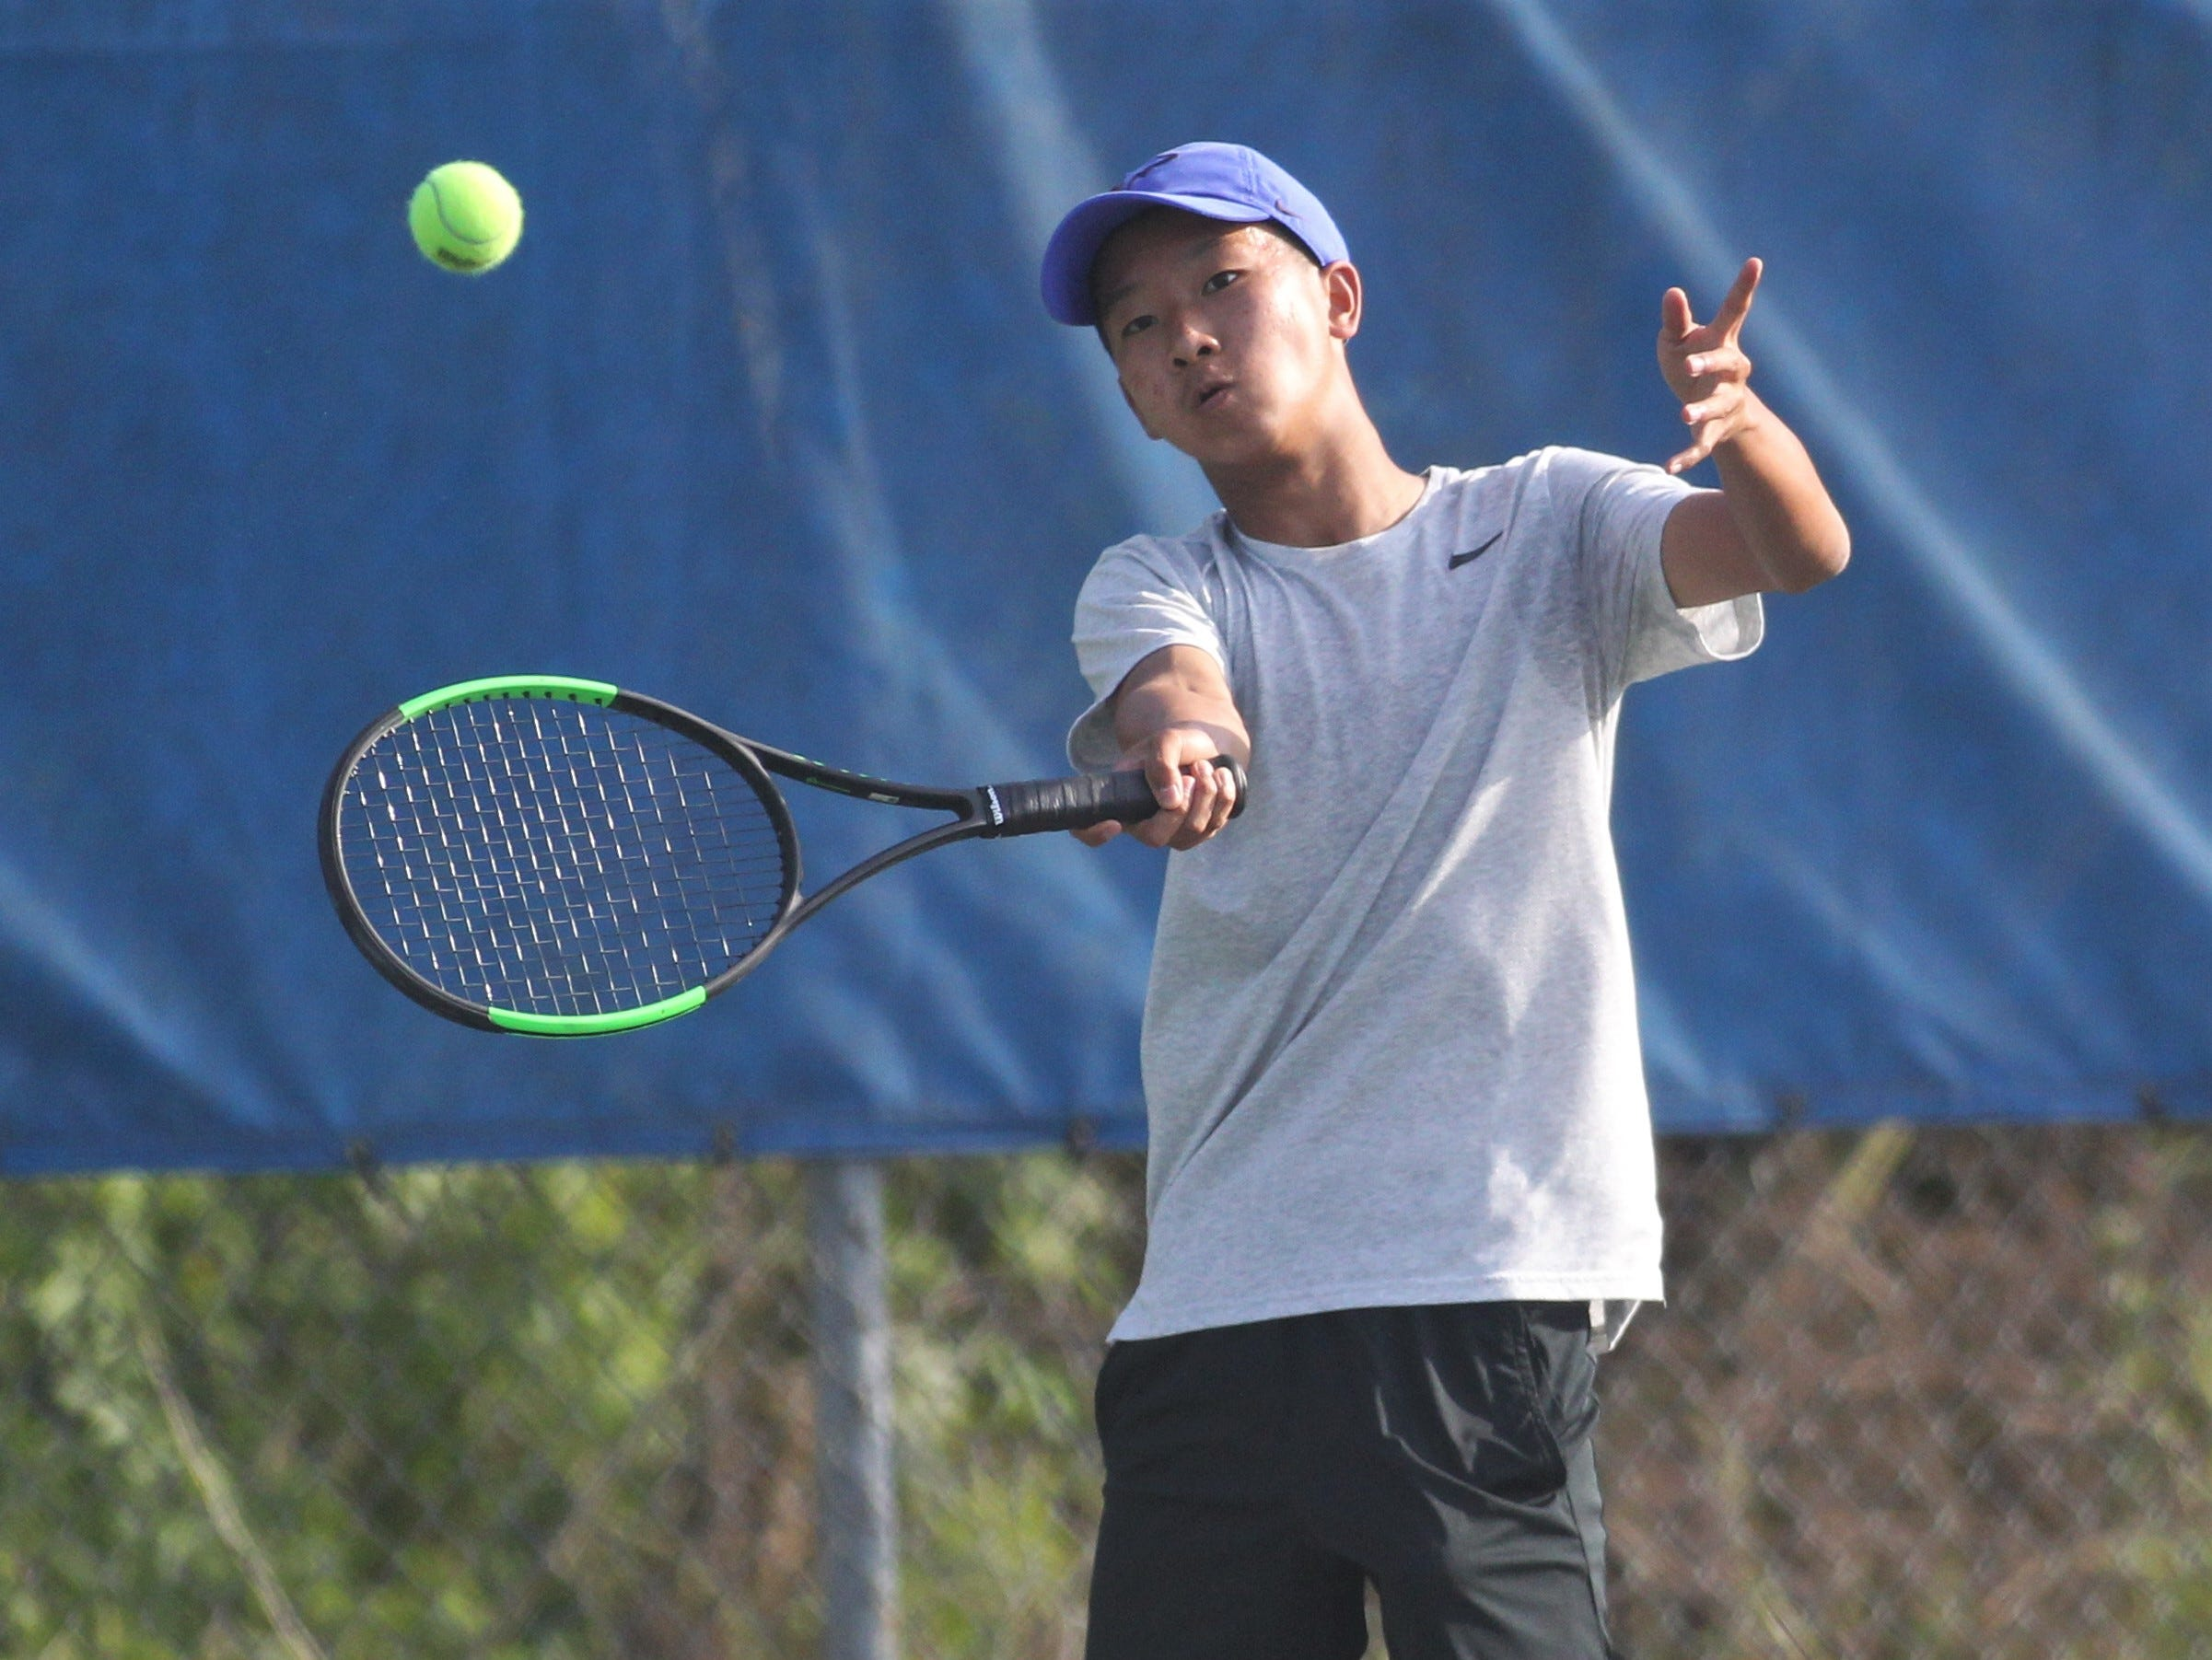 Chiles plays during the boys and girls tennis city tournament at Tom Brown Park on March 13, 2019.